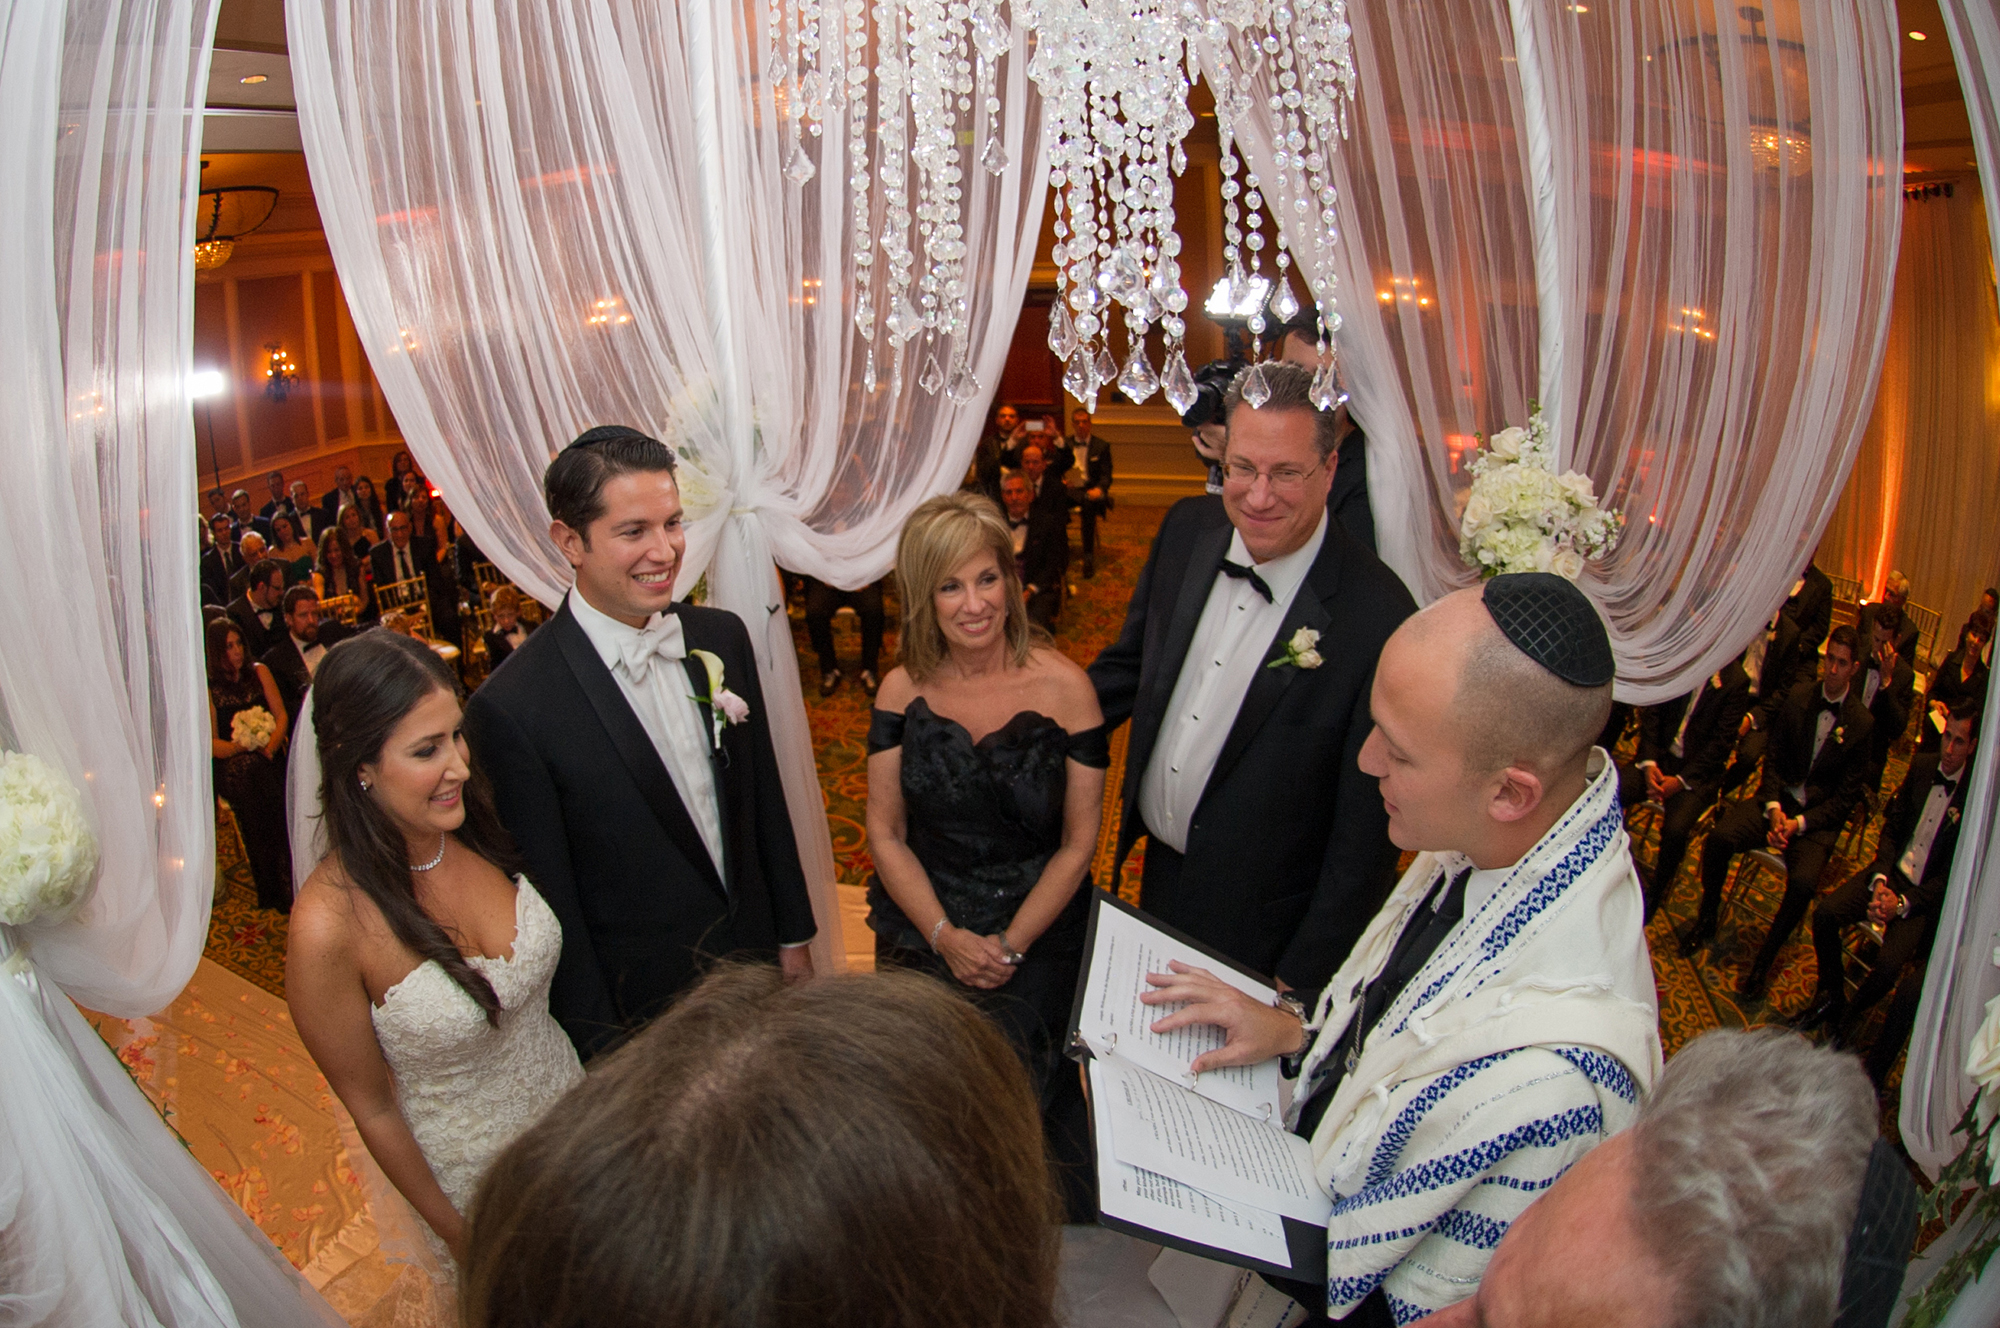 boca-raton-jewish-wedding-jeff-kolodny-photos-18